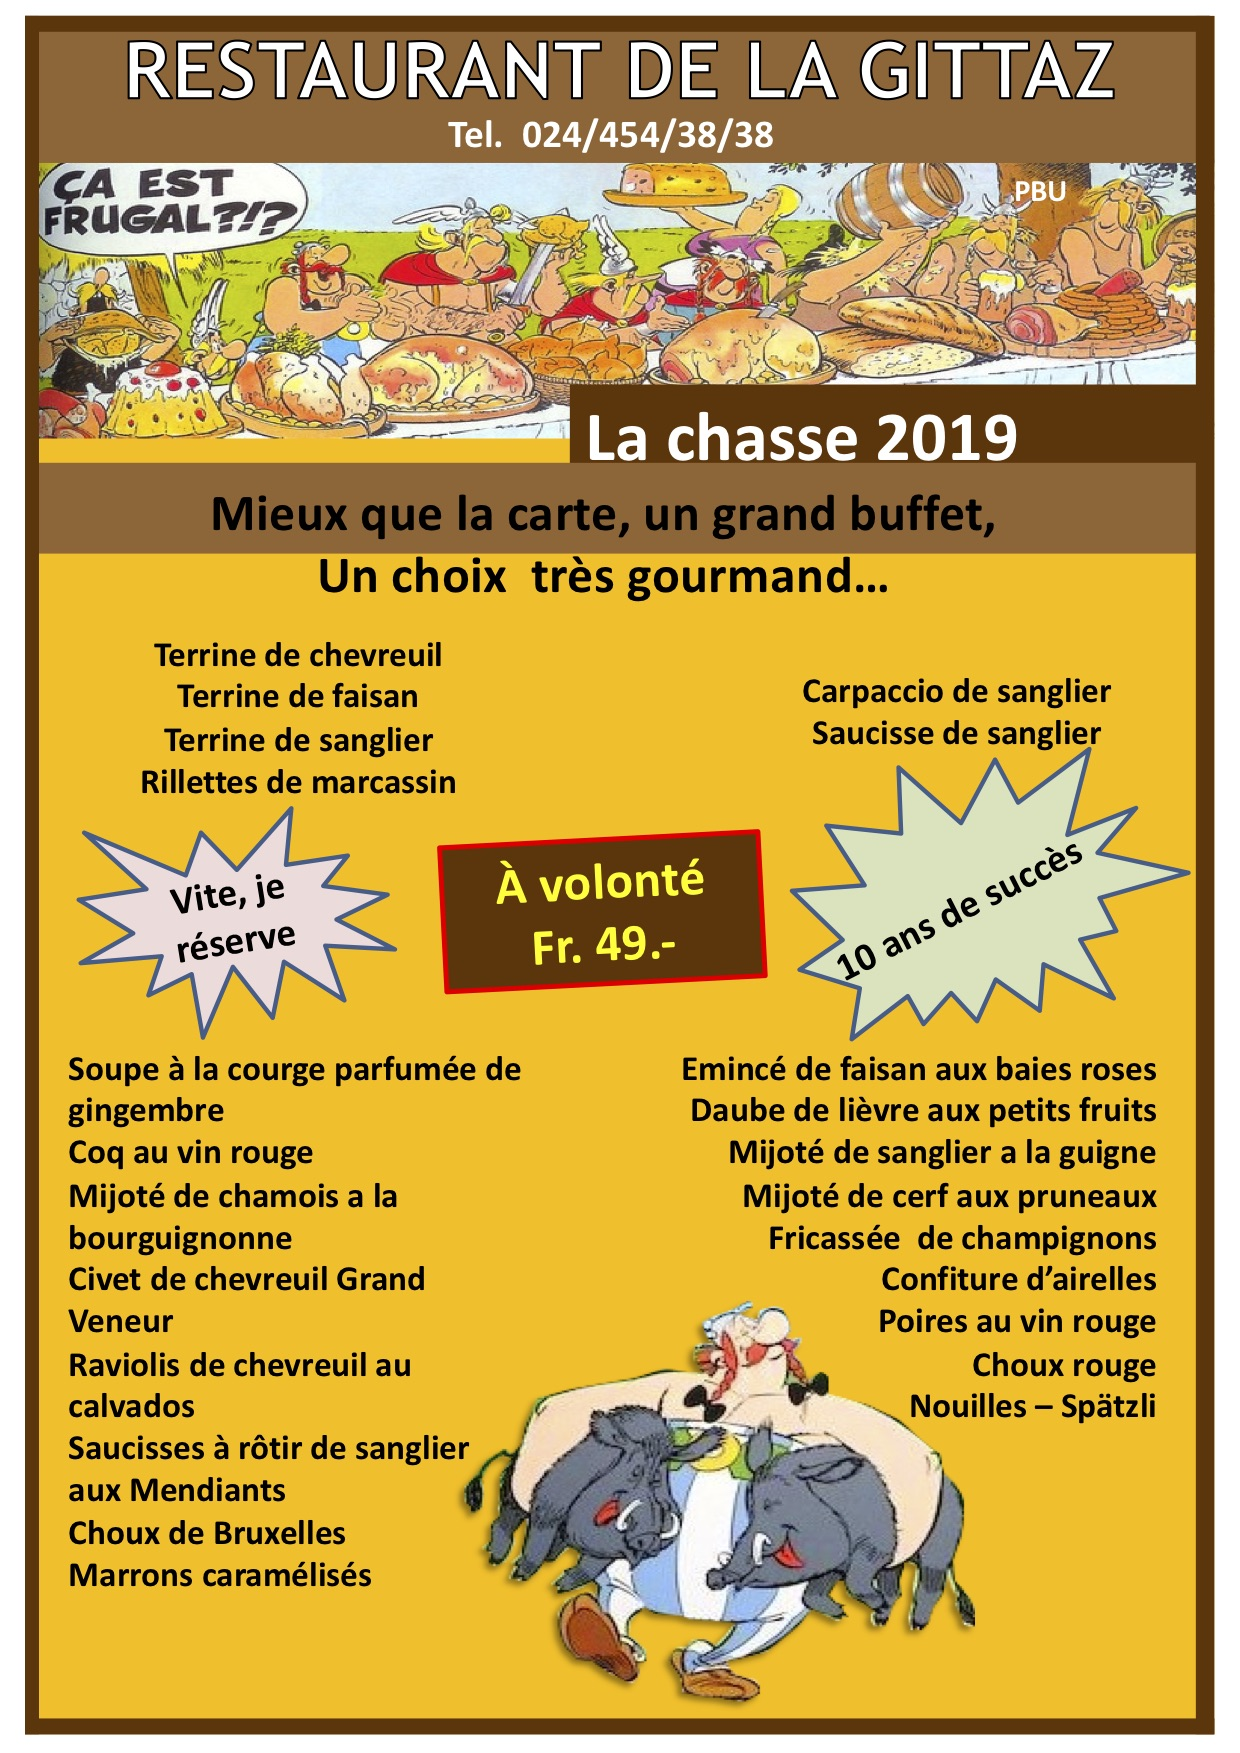 chasse-2019